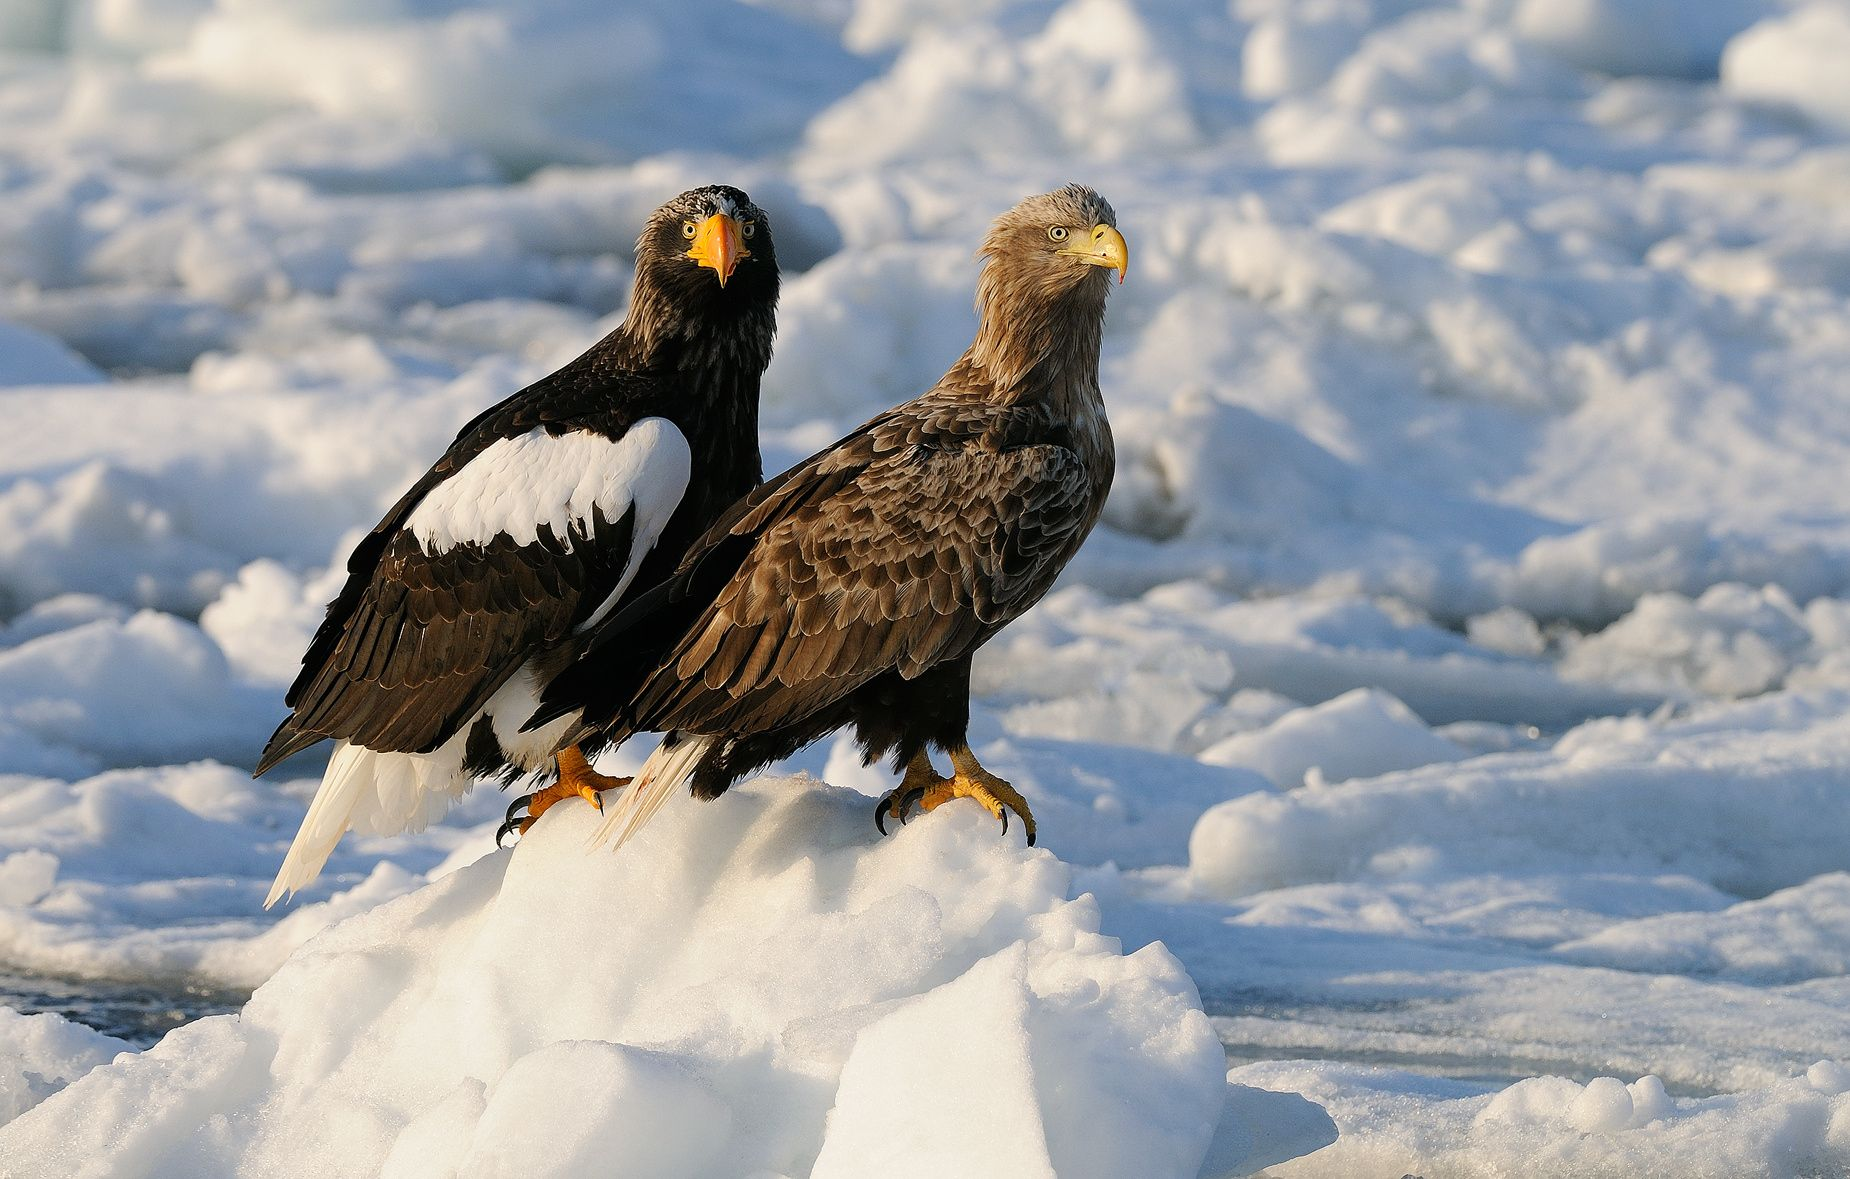 Posing by Harry  Eggens on 500px